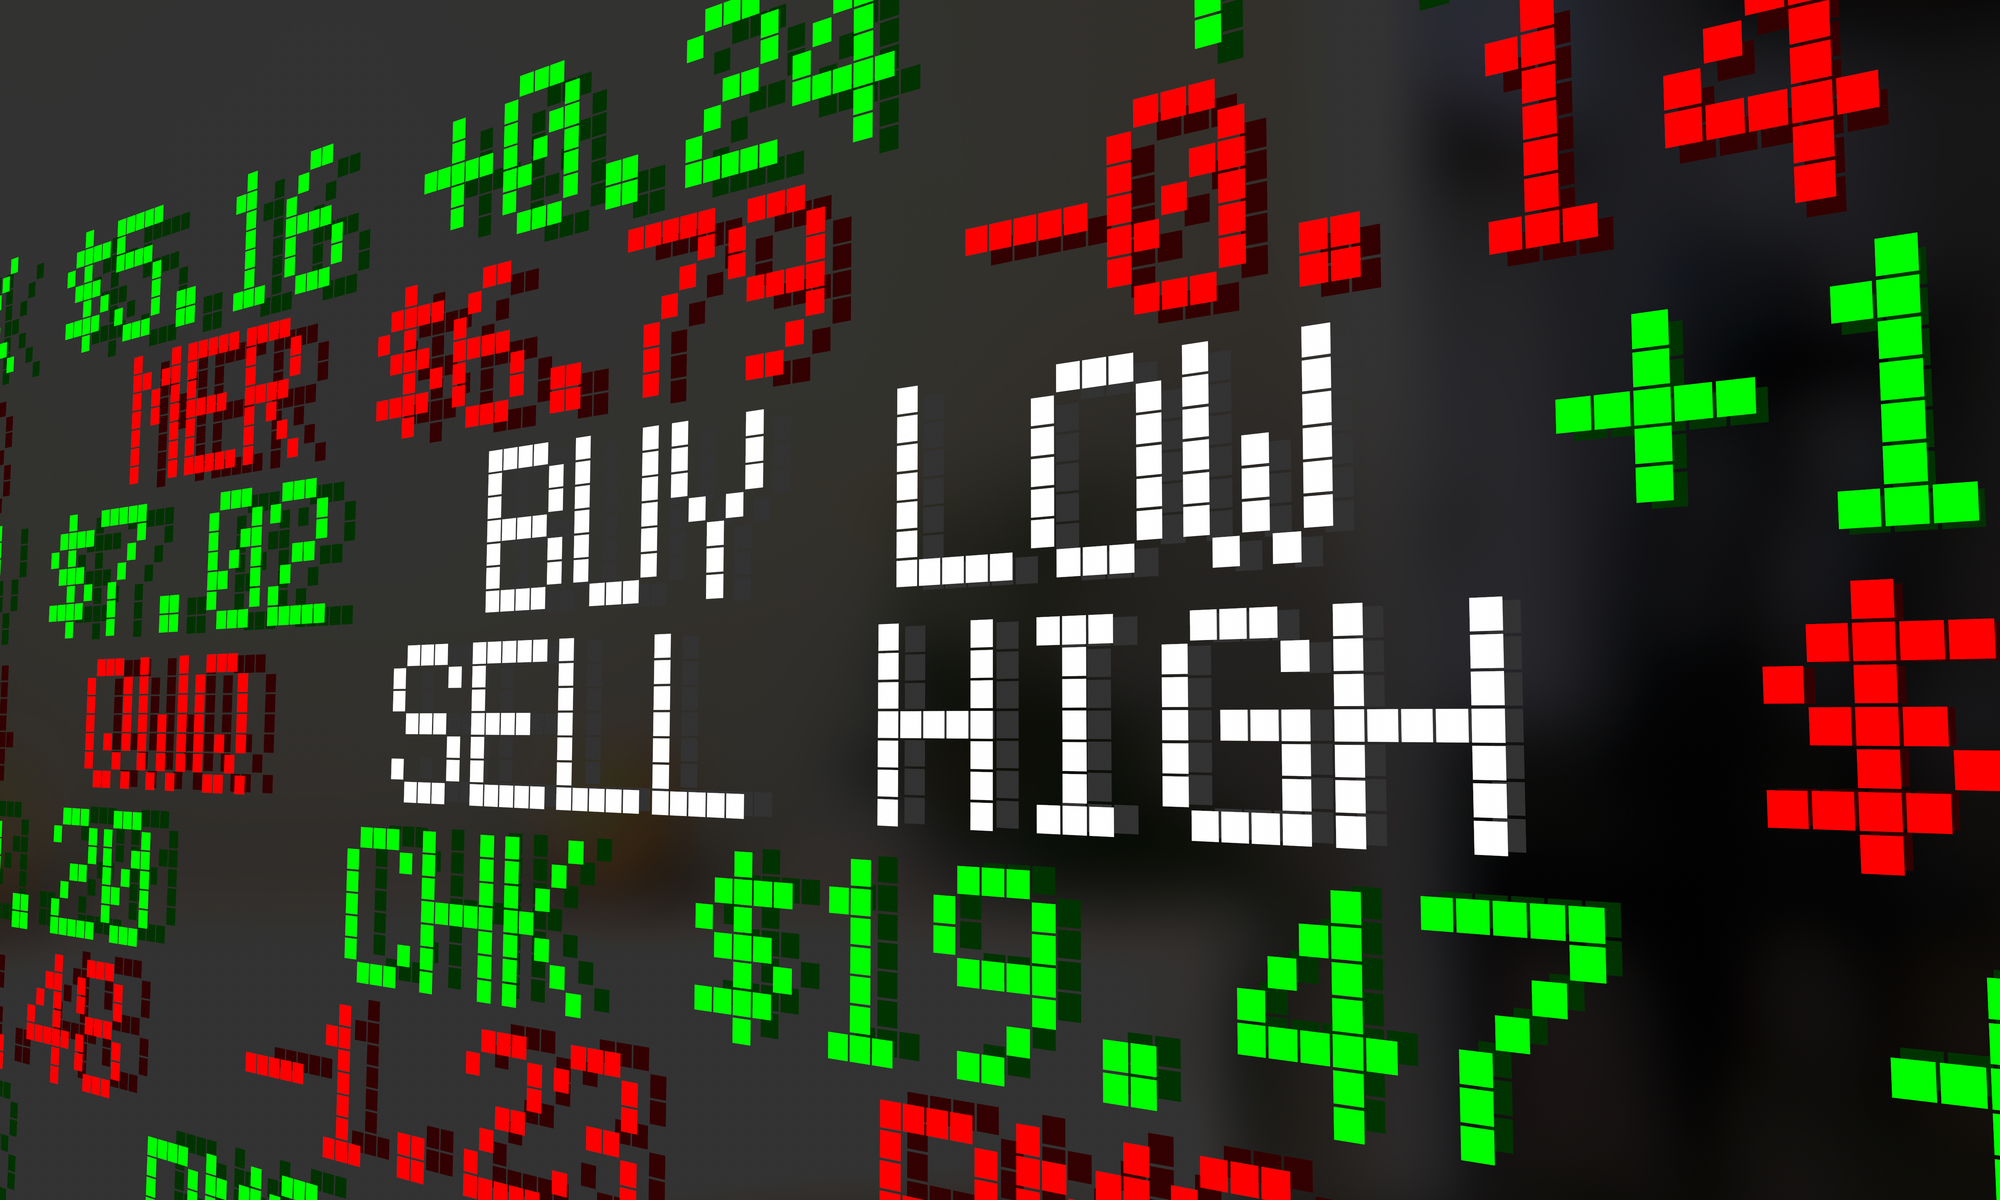 Wall street sign saying buy low and sell high.